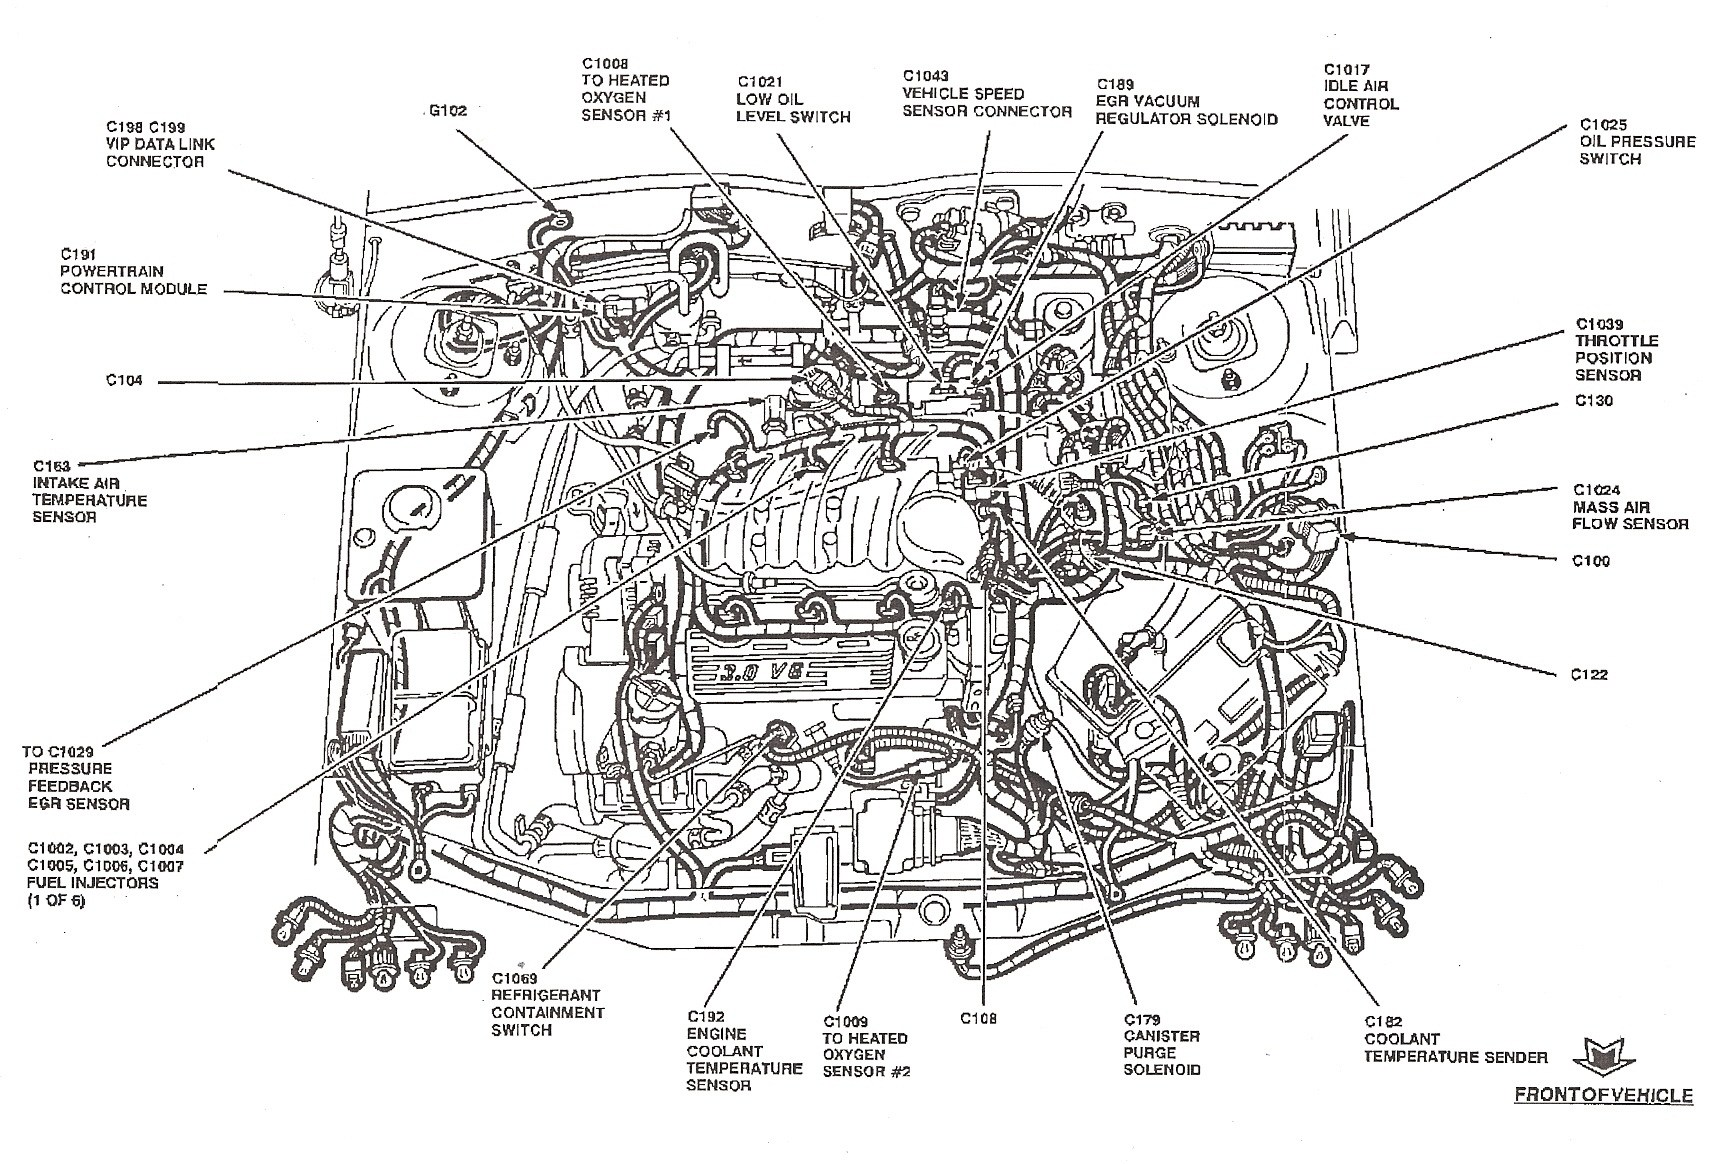 2006 Ford Taurus Engine Diagram - Bard Wiring Diagrams -  ace-wiring.kaulukai.jeanjaures37.fr | 2002 Ford Escape 3 0 Engine Diagram |  | Wiring Diagram Resource